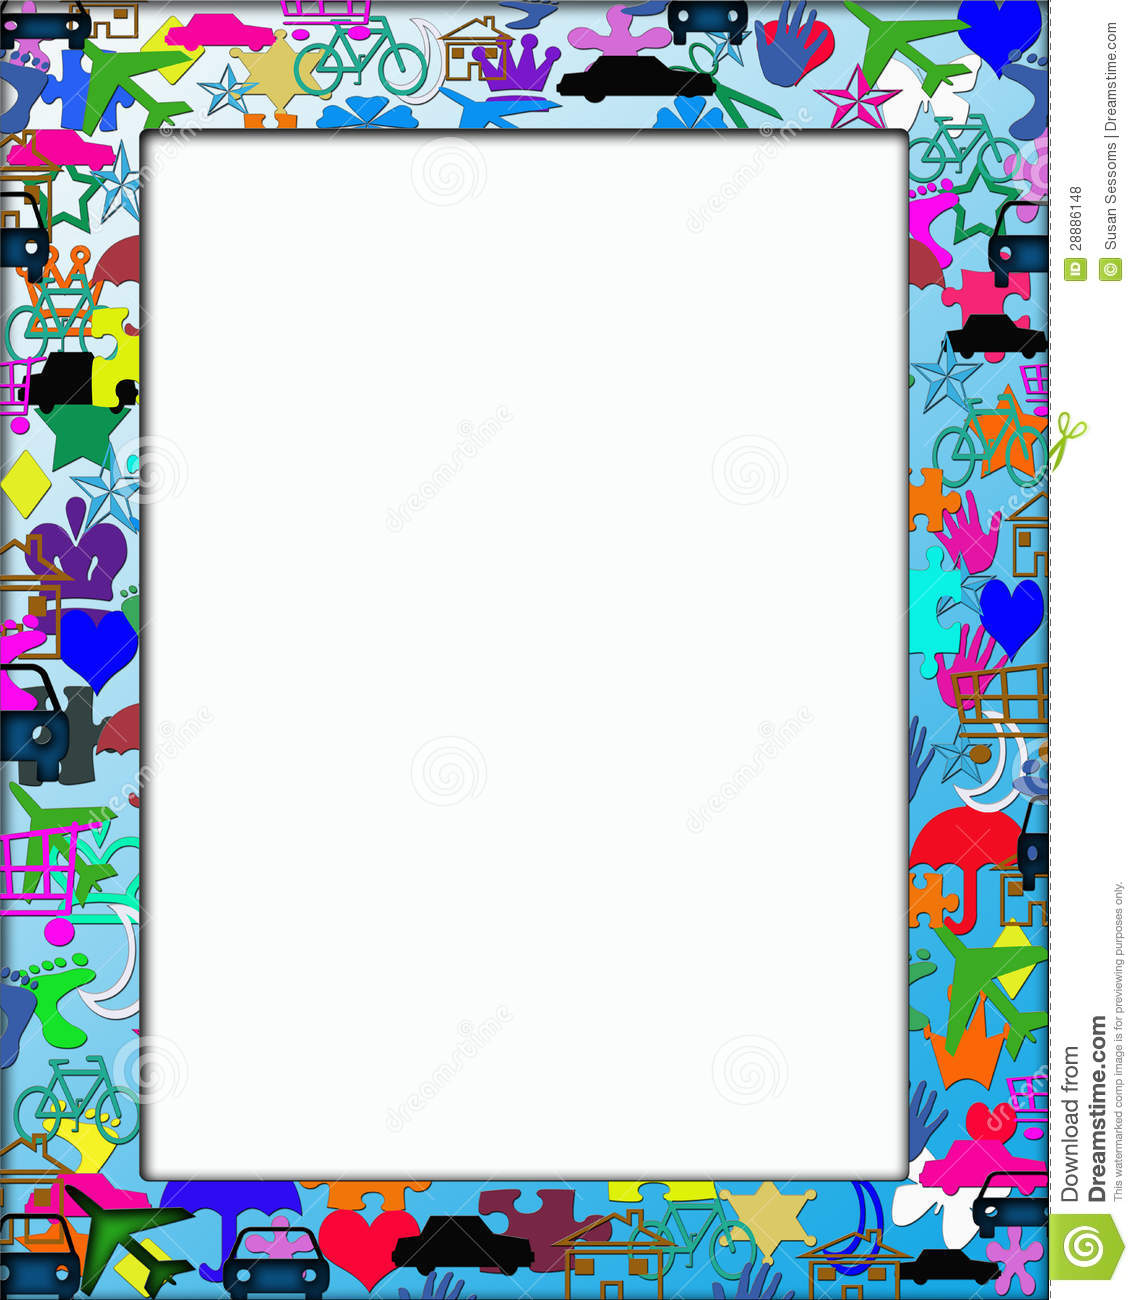 Kids Colorful Themed Frame Border Stock Photo - Illustration of ...